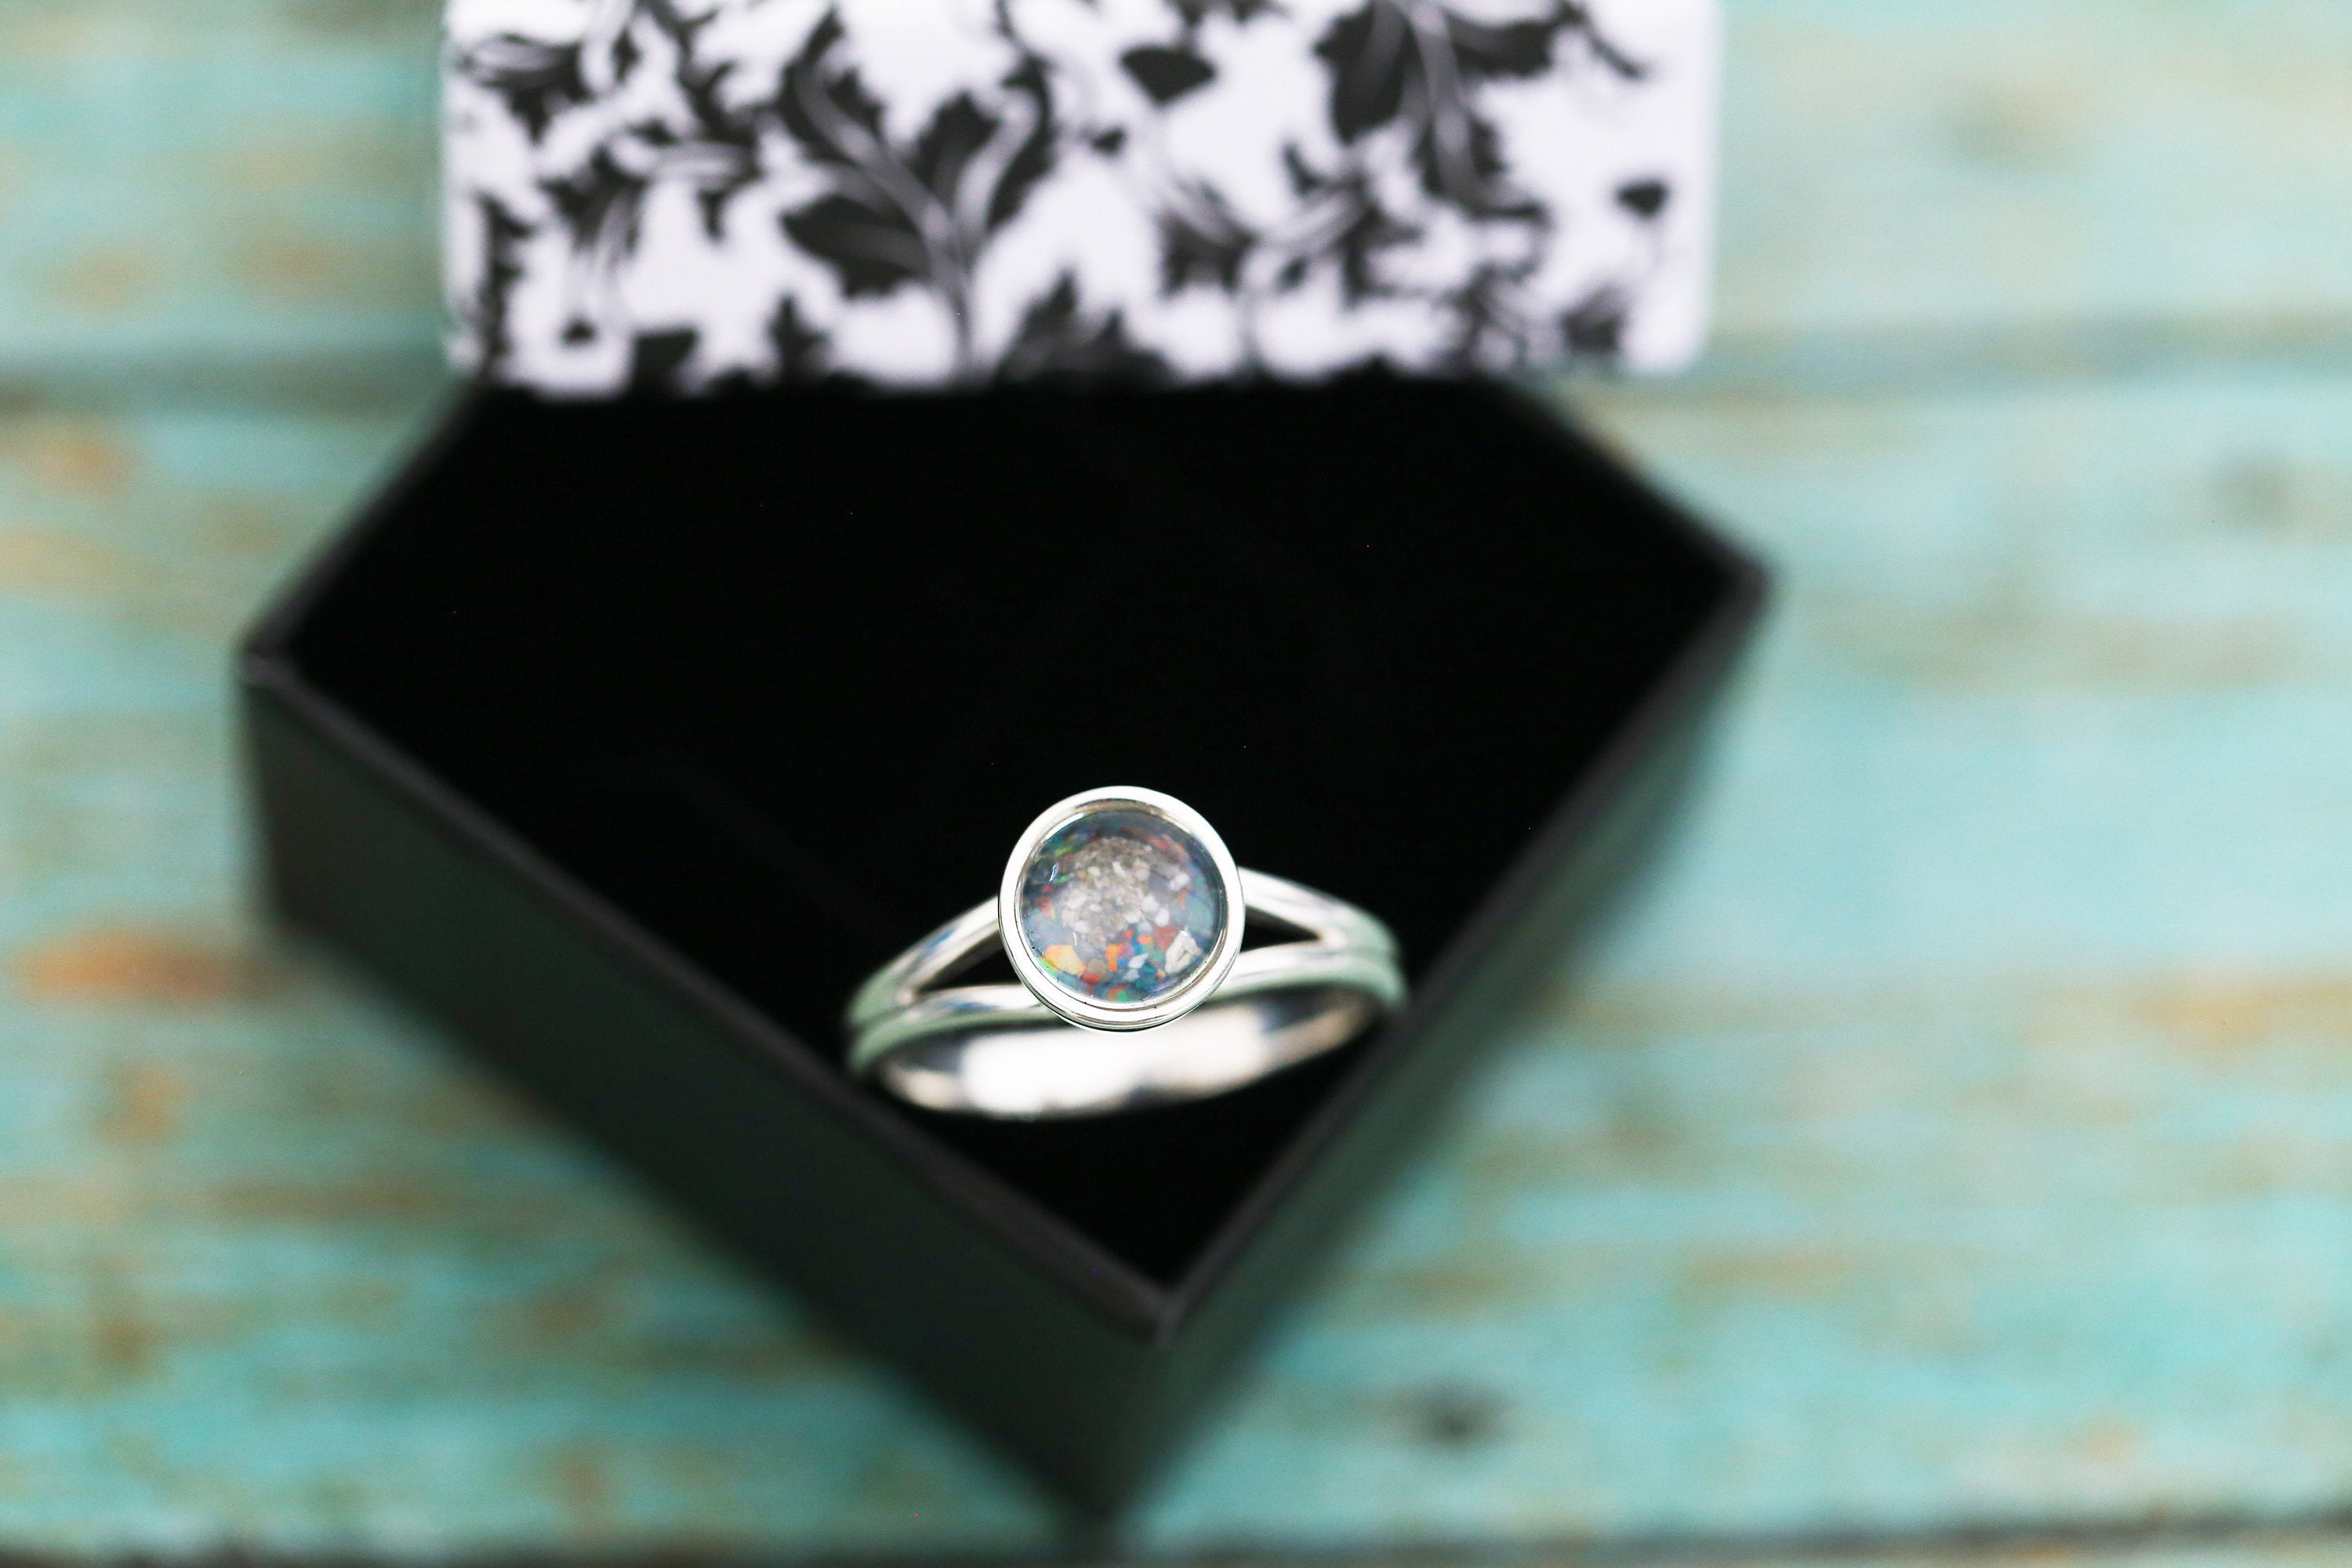 8mm Opal Cremation Ring - 14k White Gold Cremation Ring - Cremation Jewelry - Ash Ring - Ash Jewelry - Urn Ring - Pet Loss